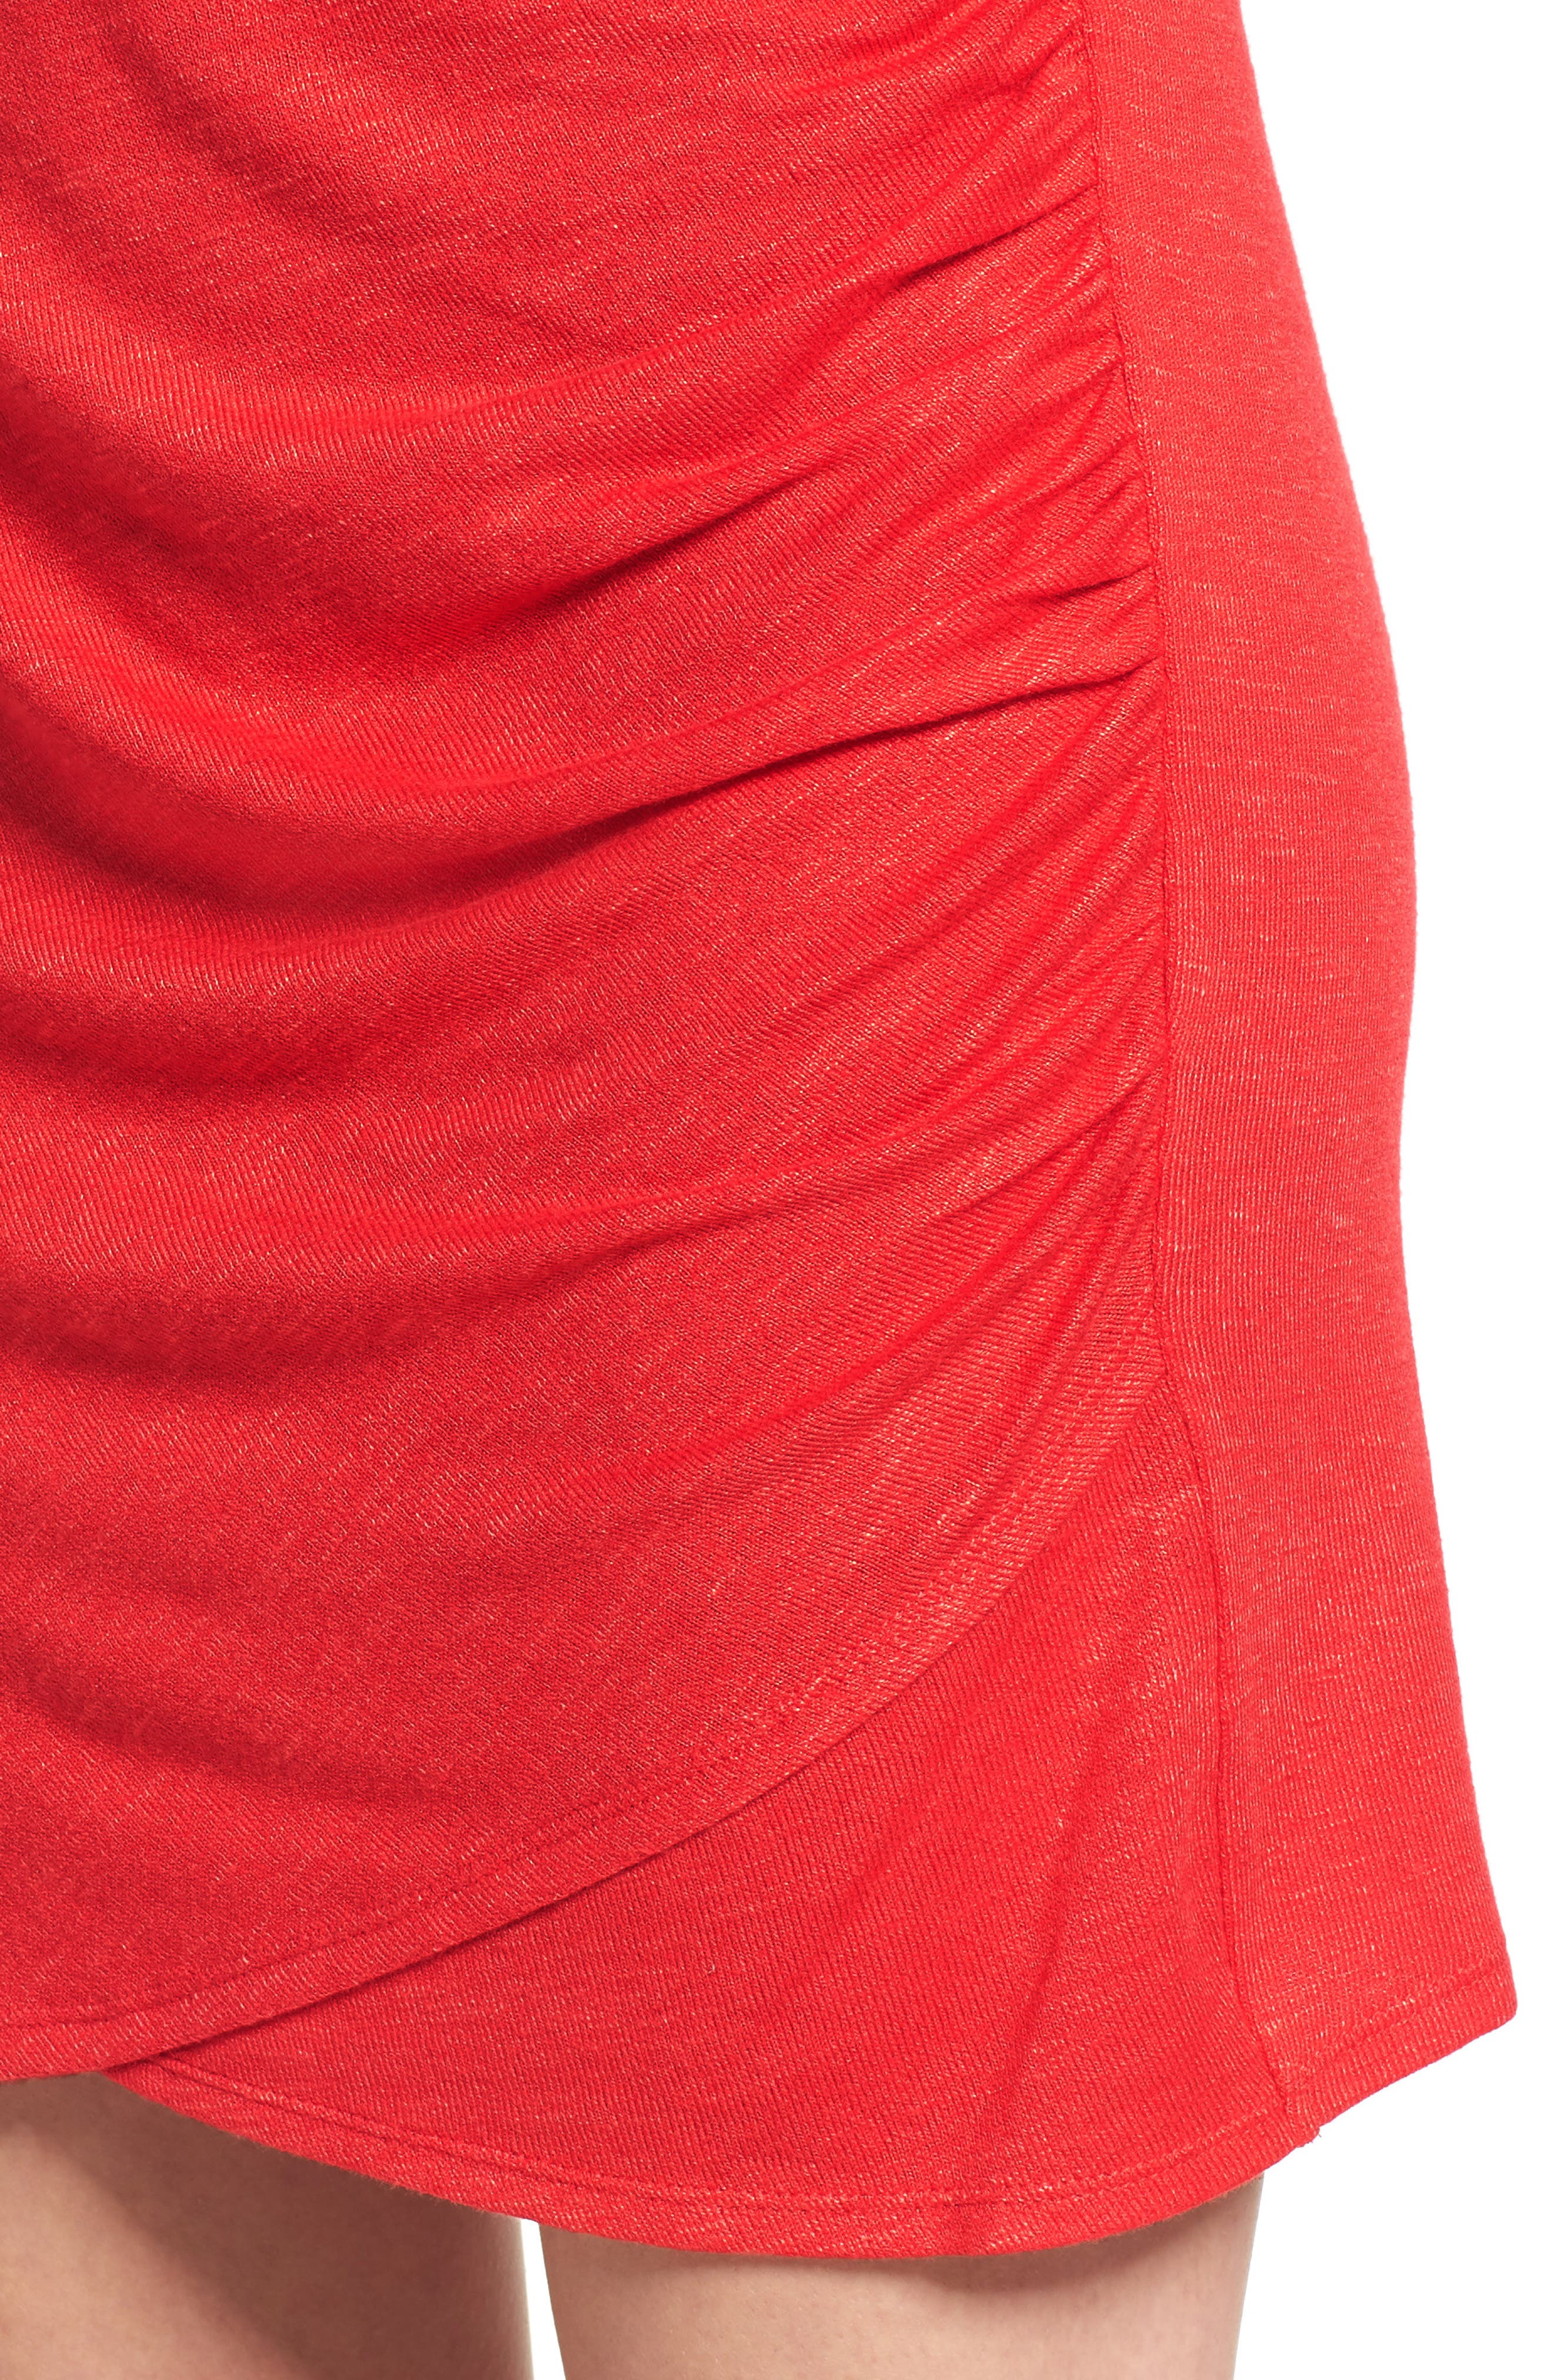 Ruched Minidress,                             Alternate thumbnail 4, color,                             Red